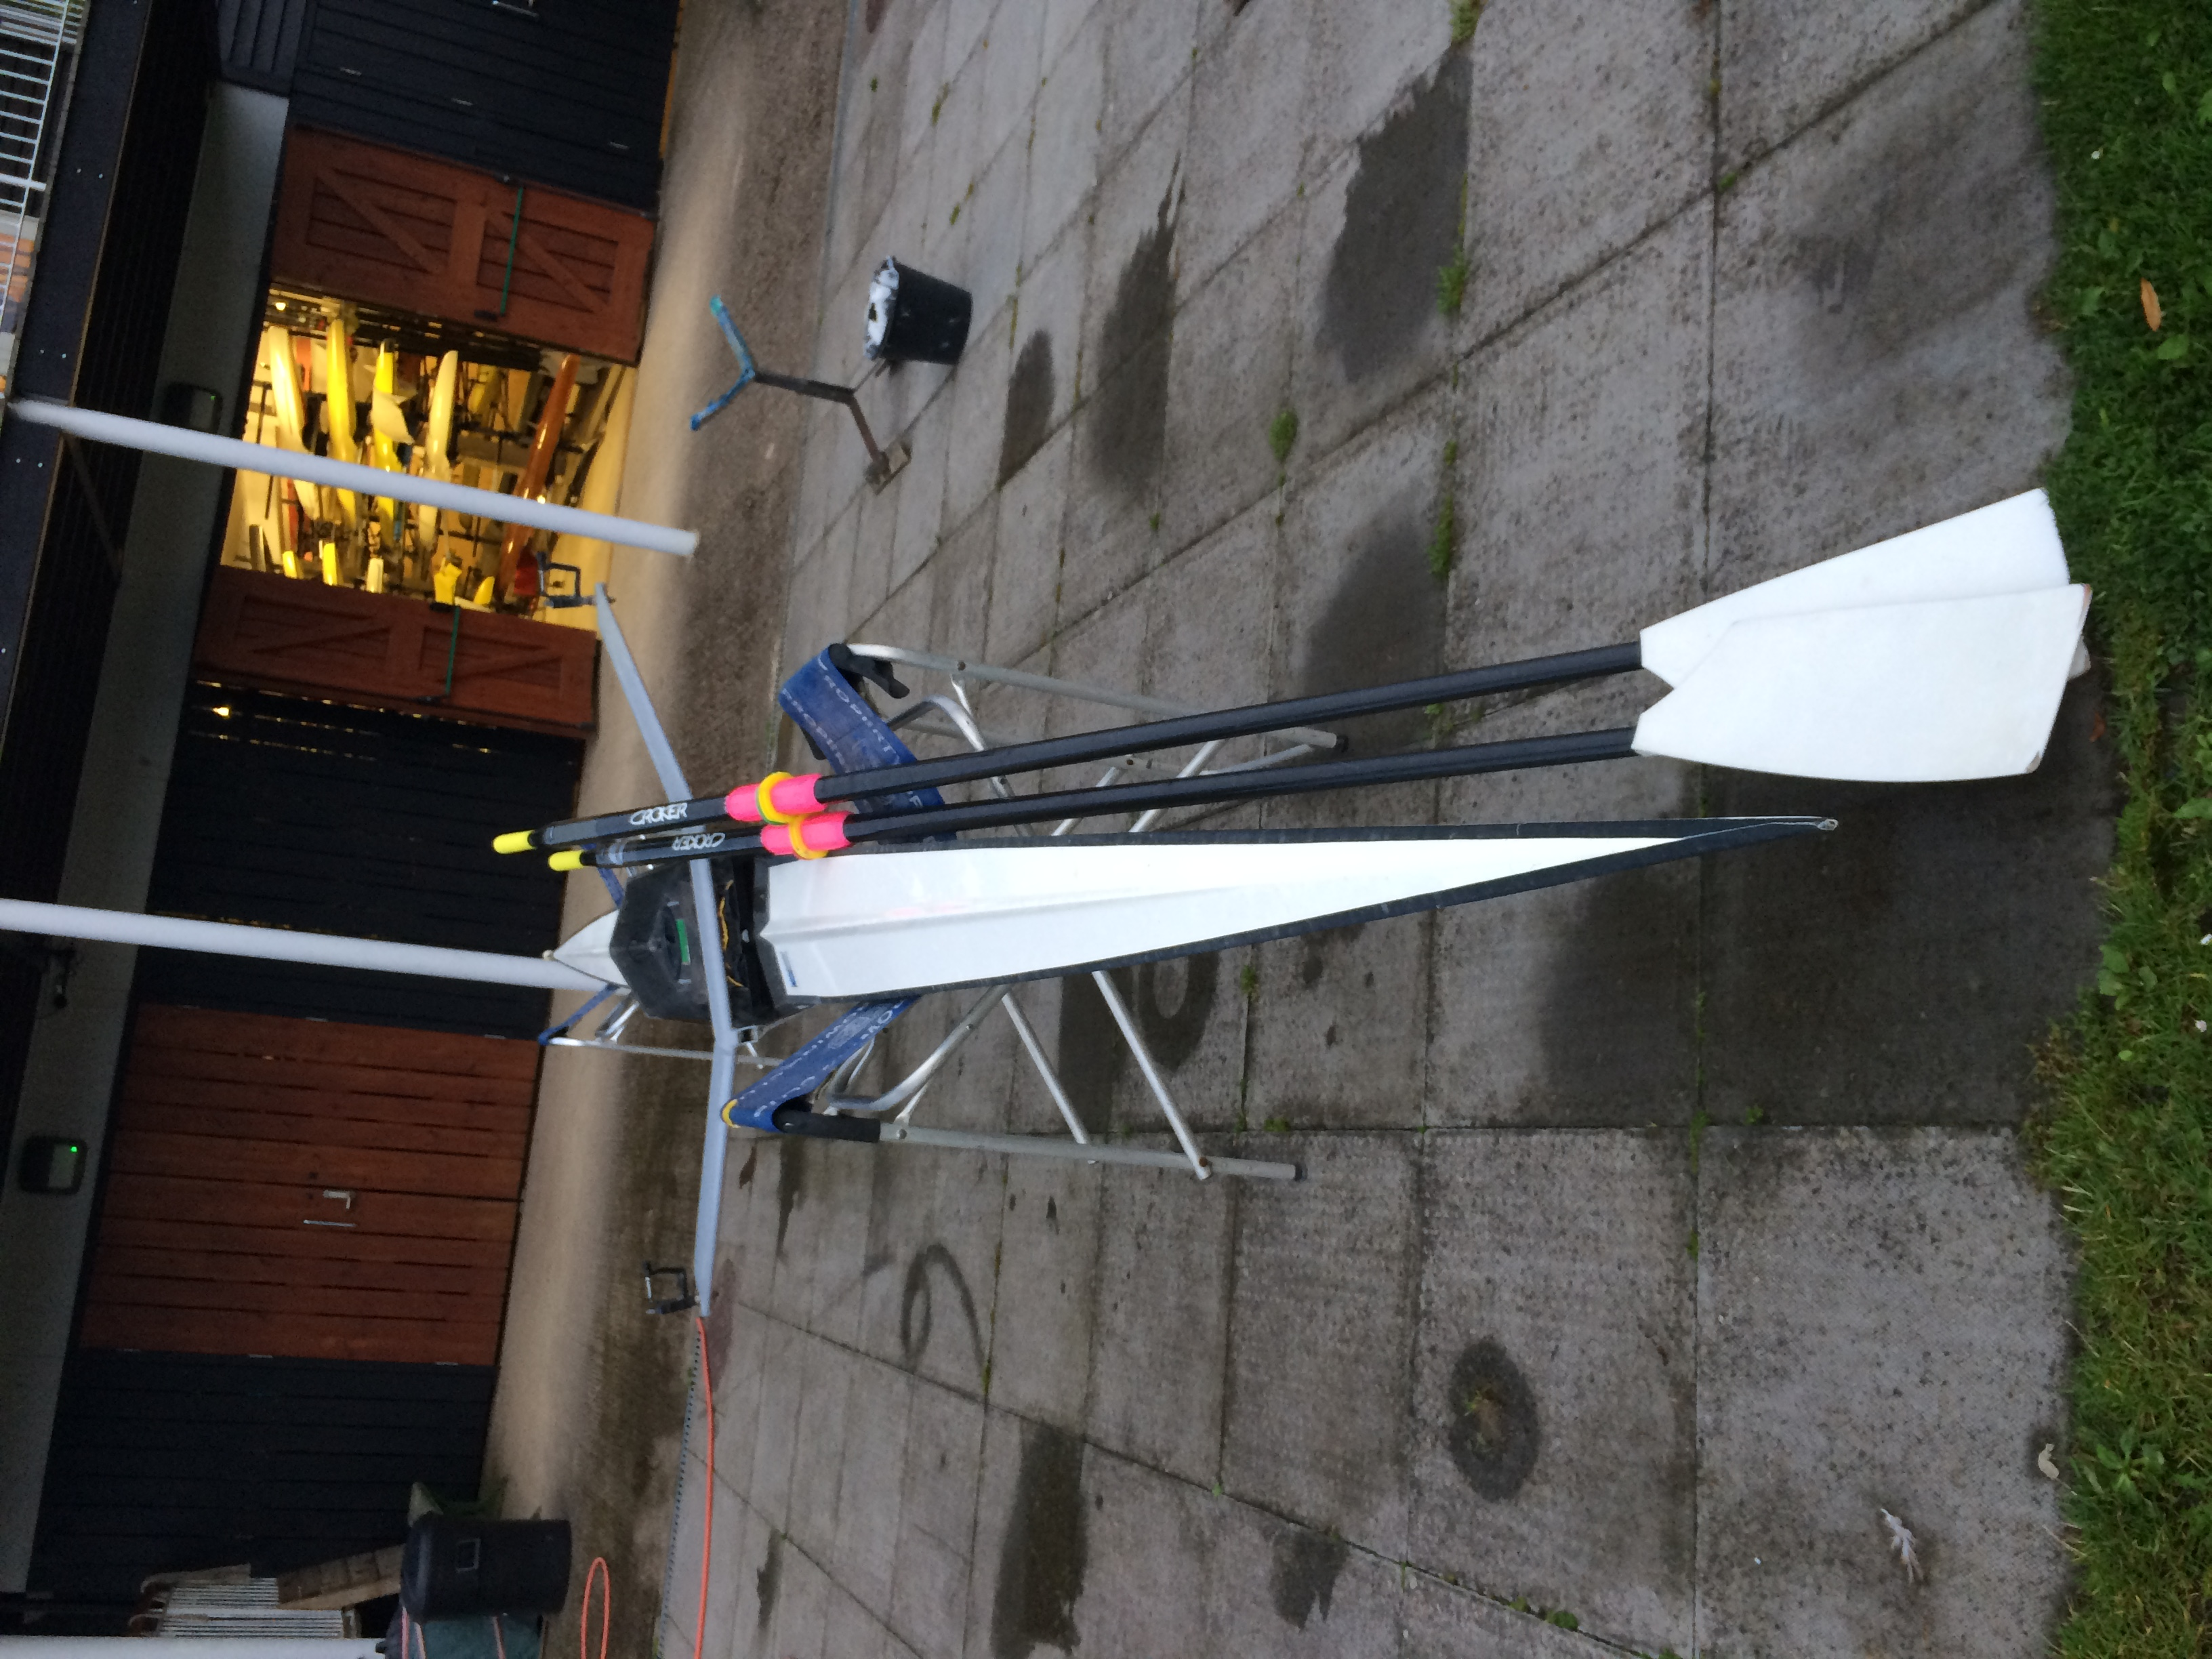 Sims 2006 50-65kg 1x REDUCED PRICE FOR QUICK SALE